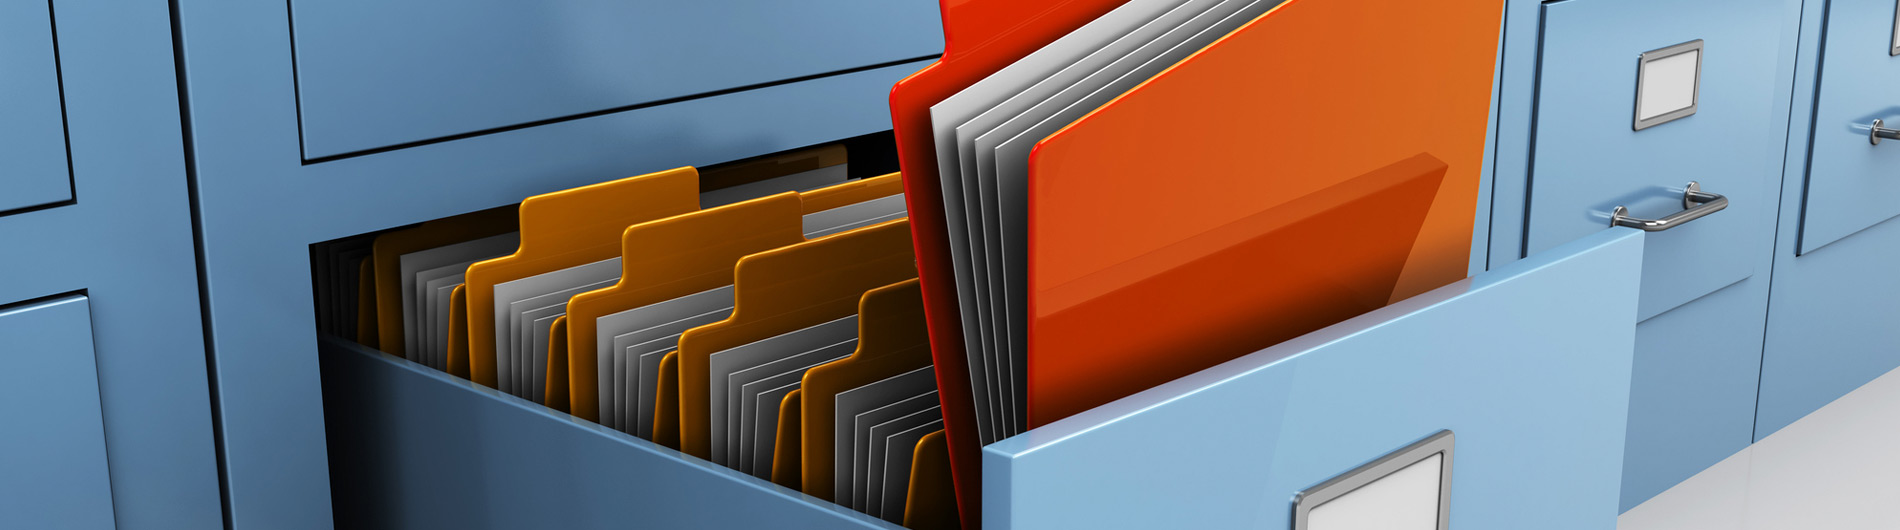 Ditch Your Filing Cabinets, Go Digital: Electronic Document Management for Research